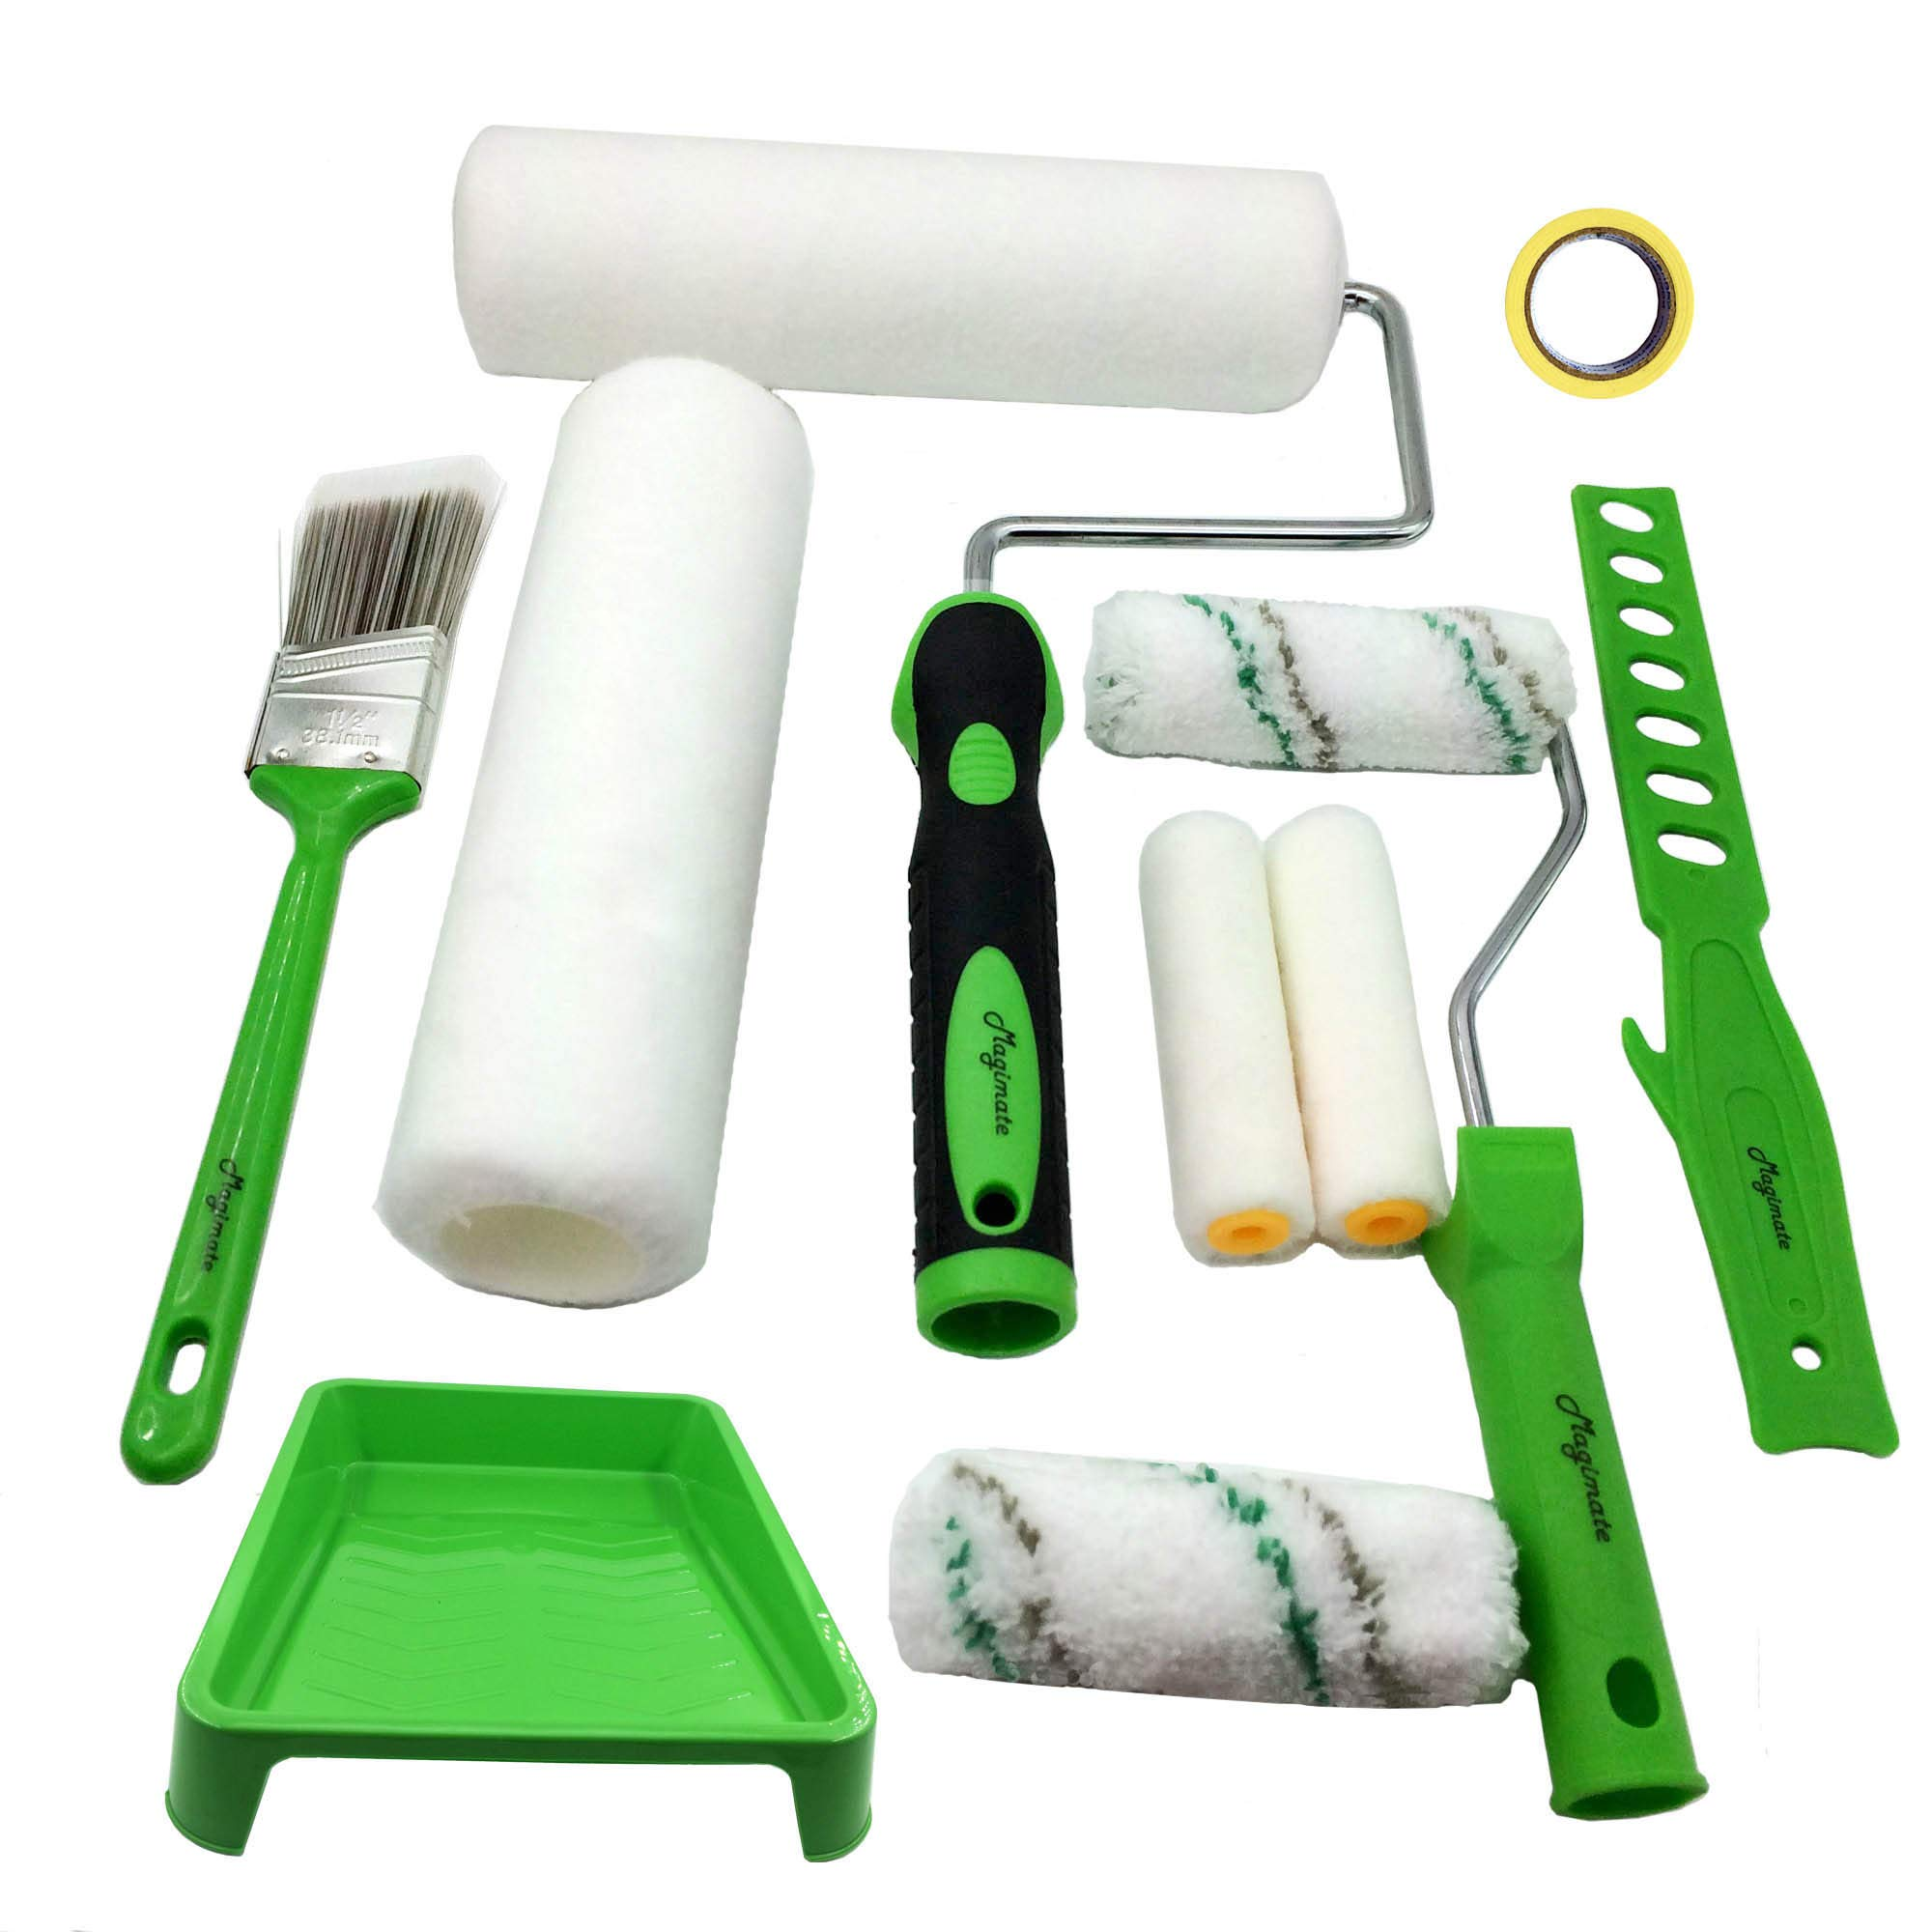 Magimate Paint Roller Kit 9 Inch 4 Inch Roller Set with Frames, Cover Refills, Angled Brush, Paint Stick, Masking Tape and a Durable Paint Tray for Professional and DIY Indoor and Outdoor Painting by Magimate